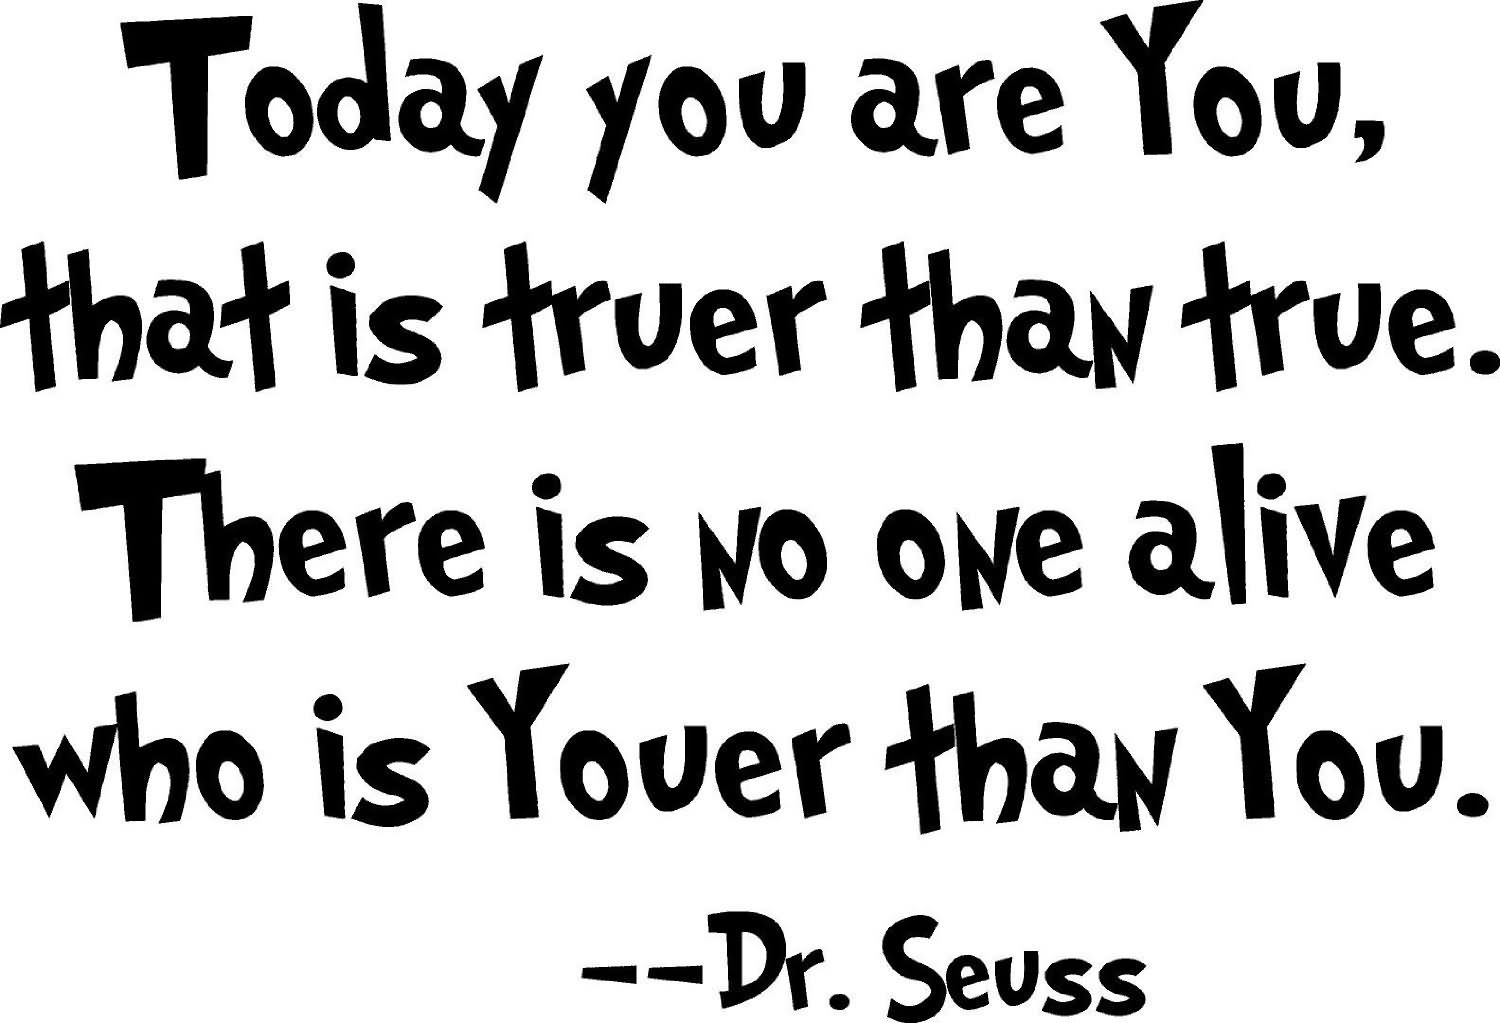 Today You Are You, That Is Truer Than True. There Is No